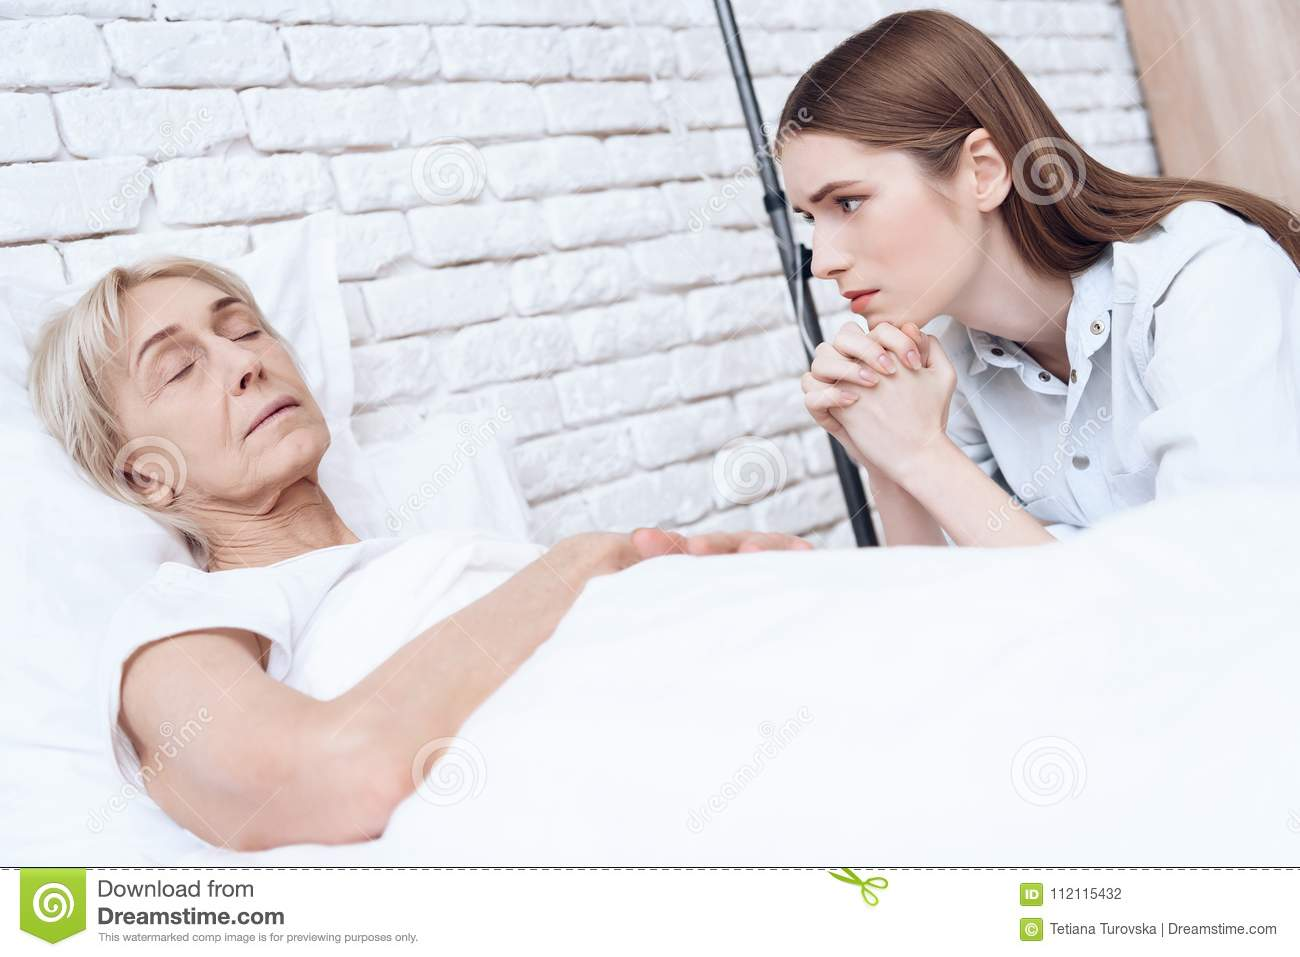 Girl is nursing elderly woman at home. Woman is feeling bad, girl is worried about her.